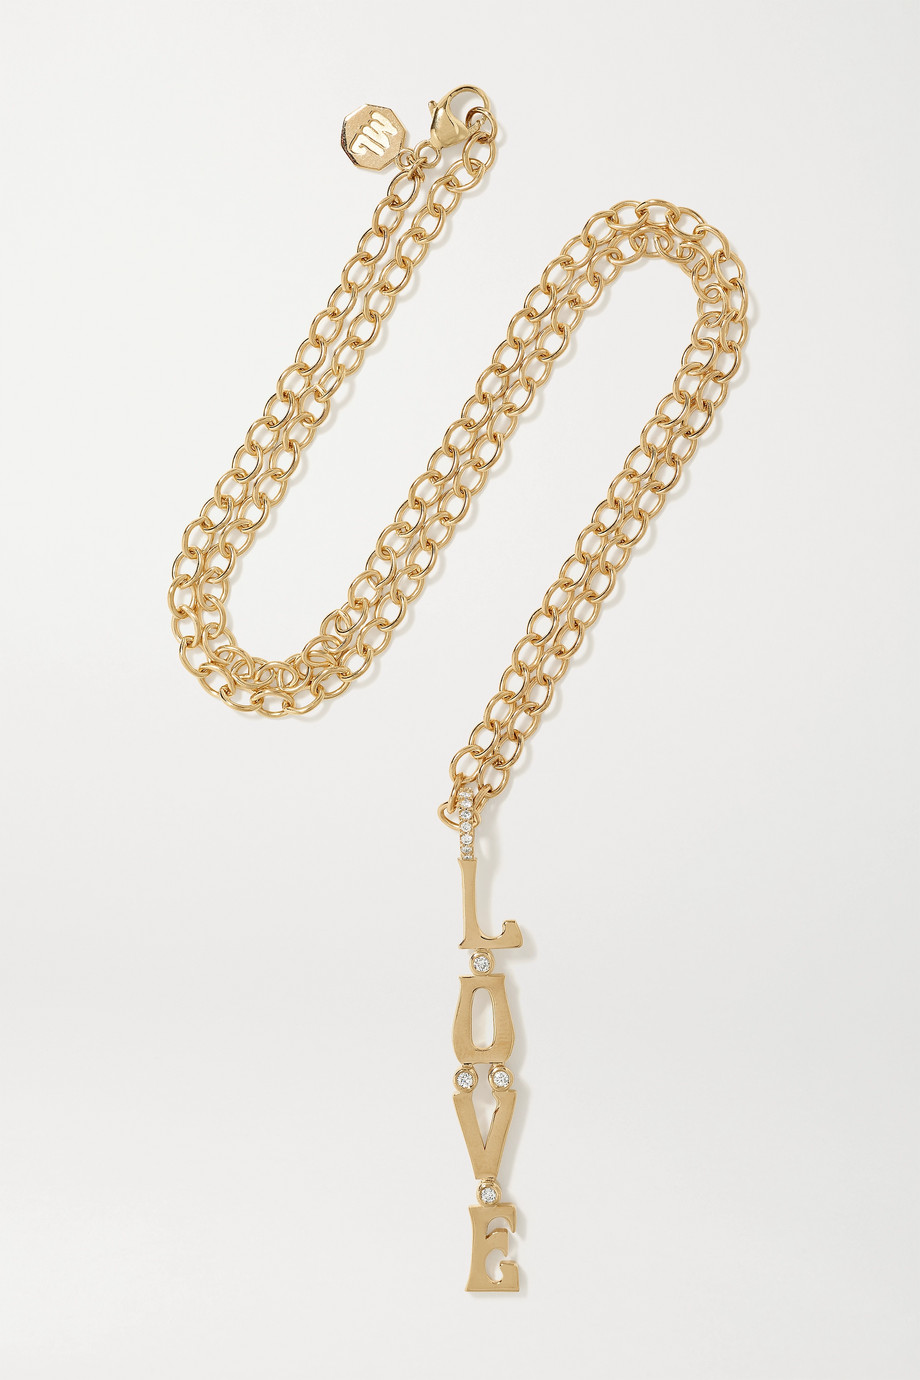 Marlo Laz Love 14-karat gold diamond necklace